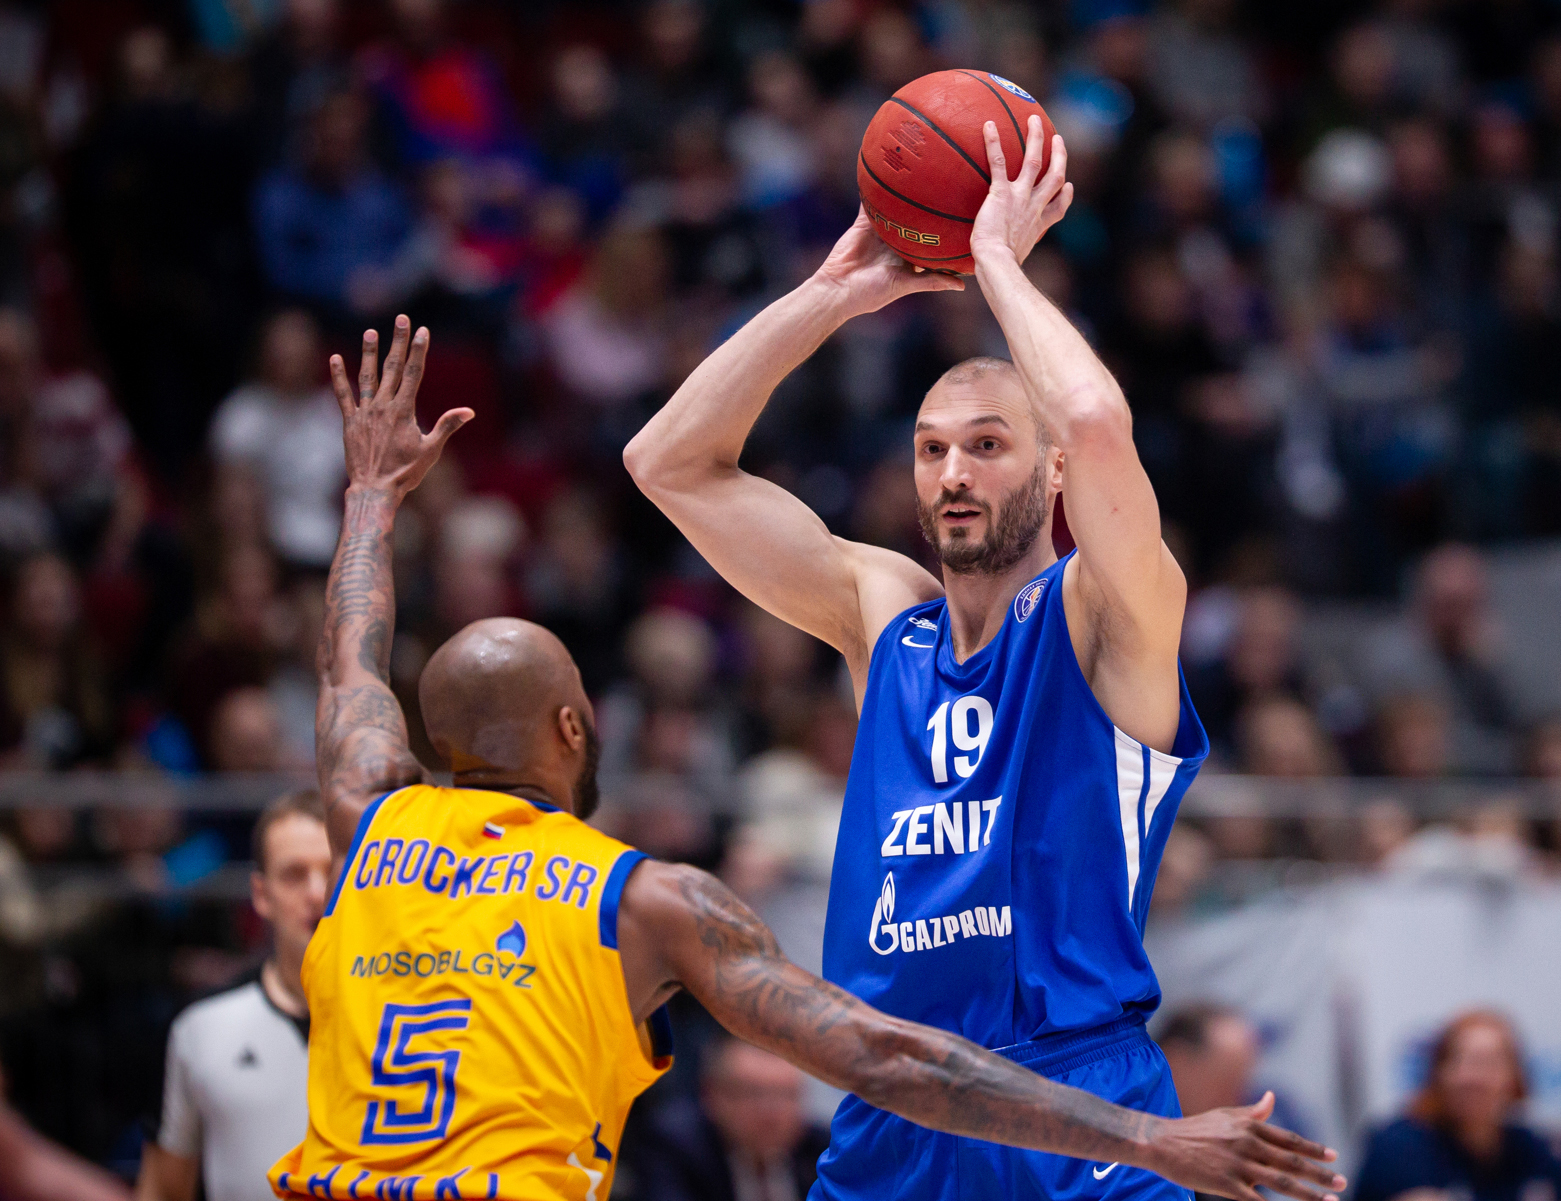 Zenit Streaks To 4th-Straight Win At Khimki's Expense